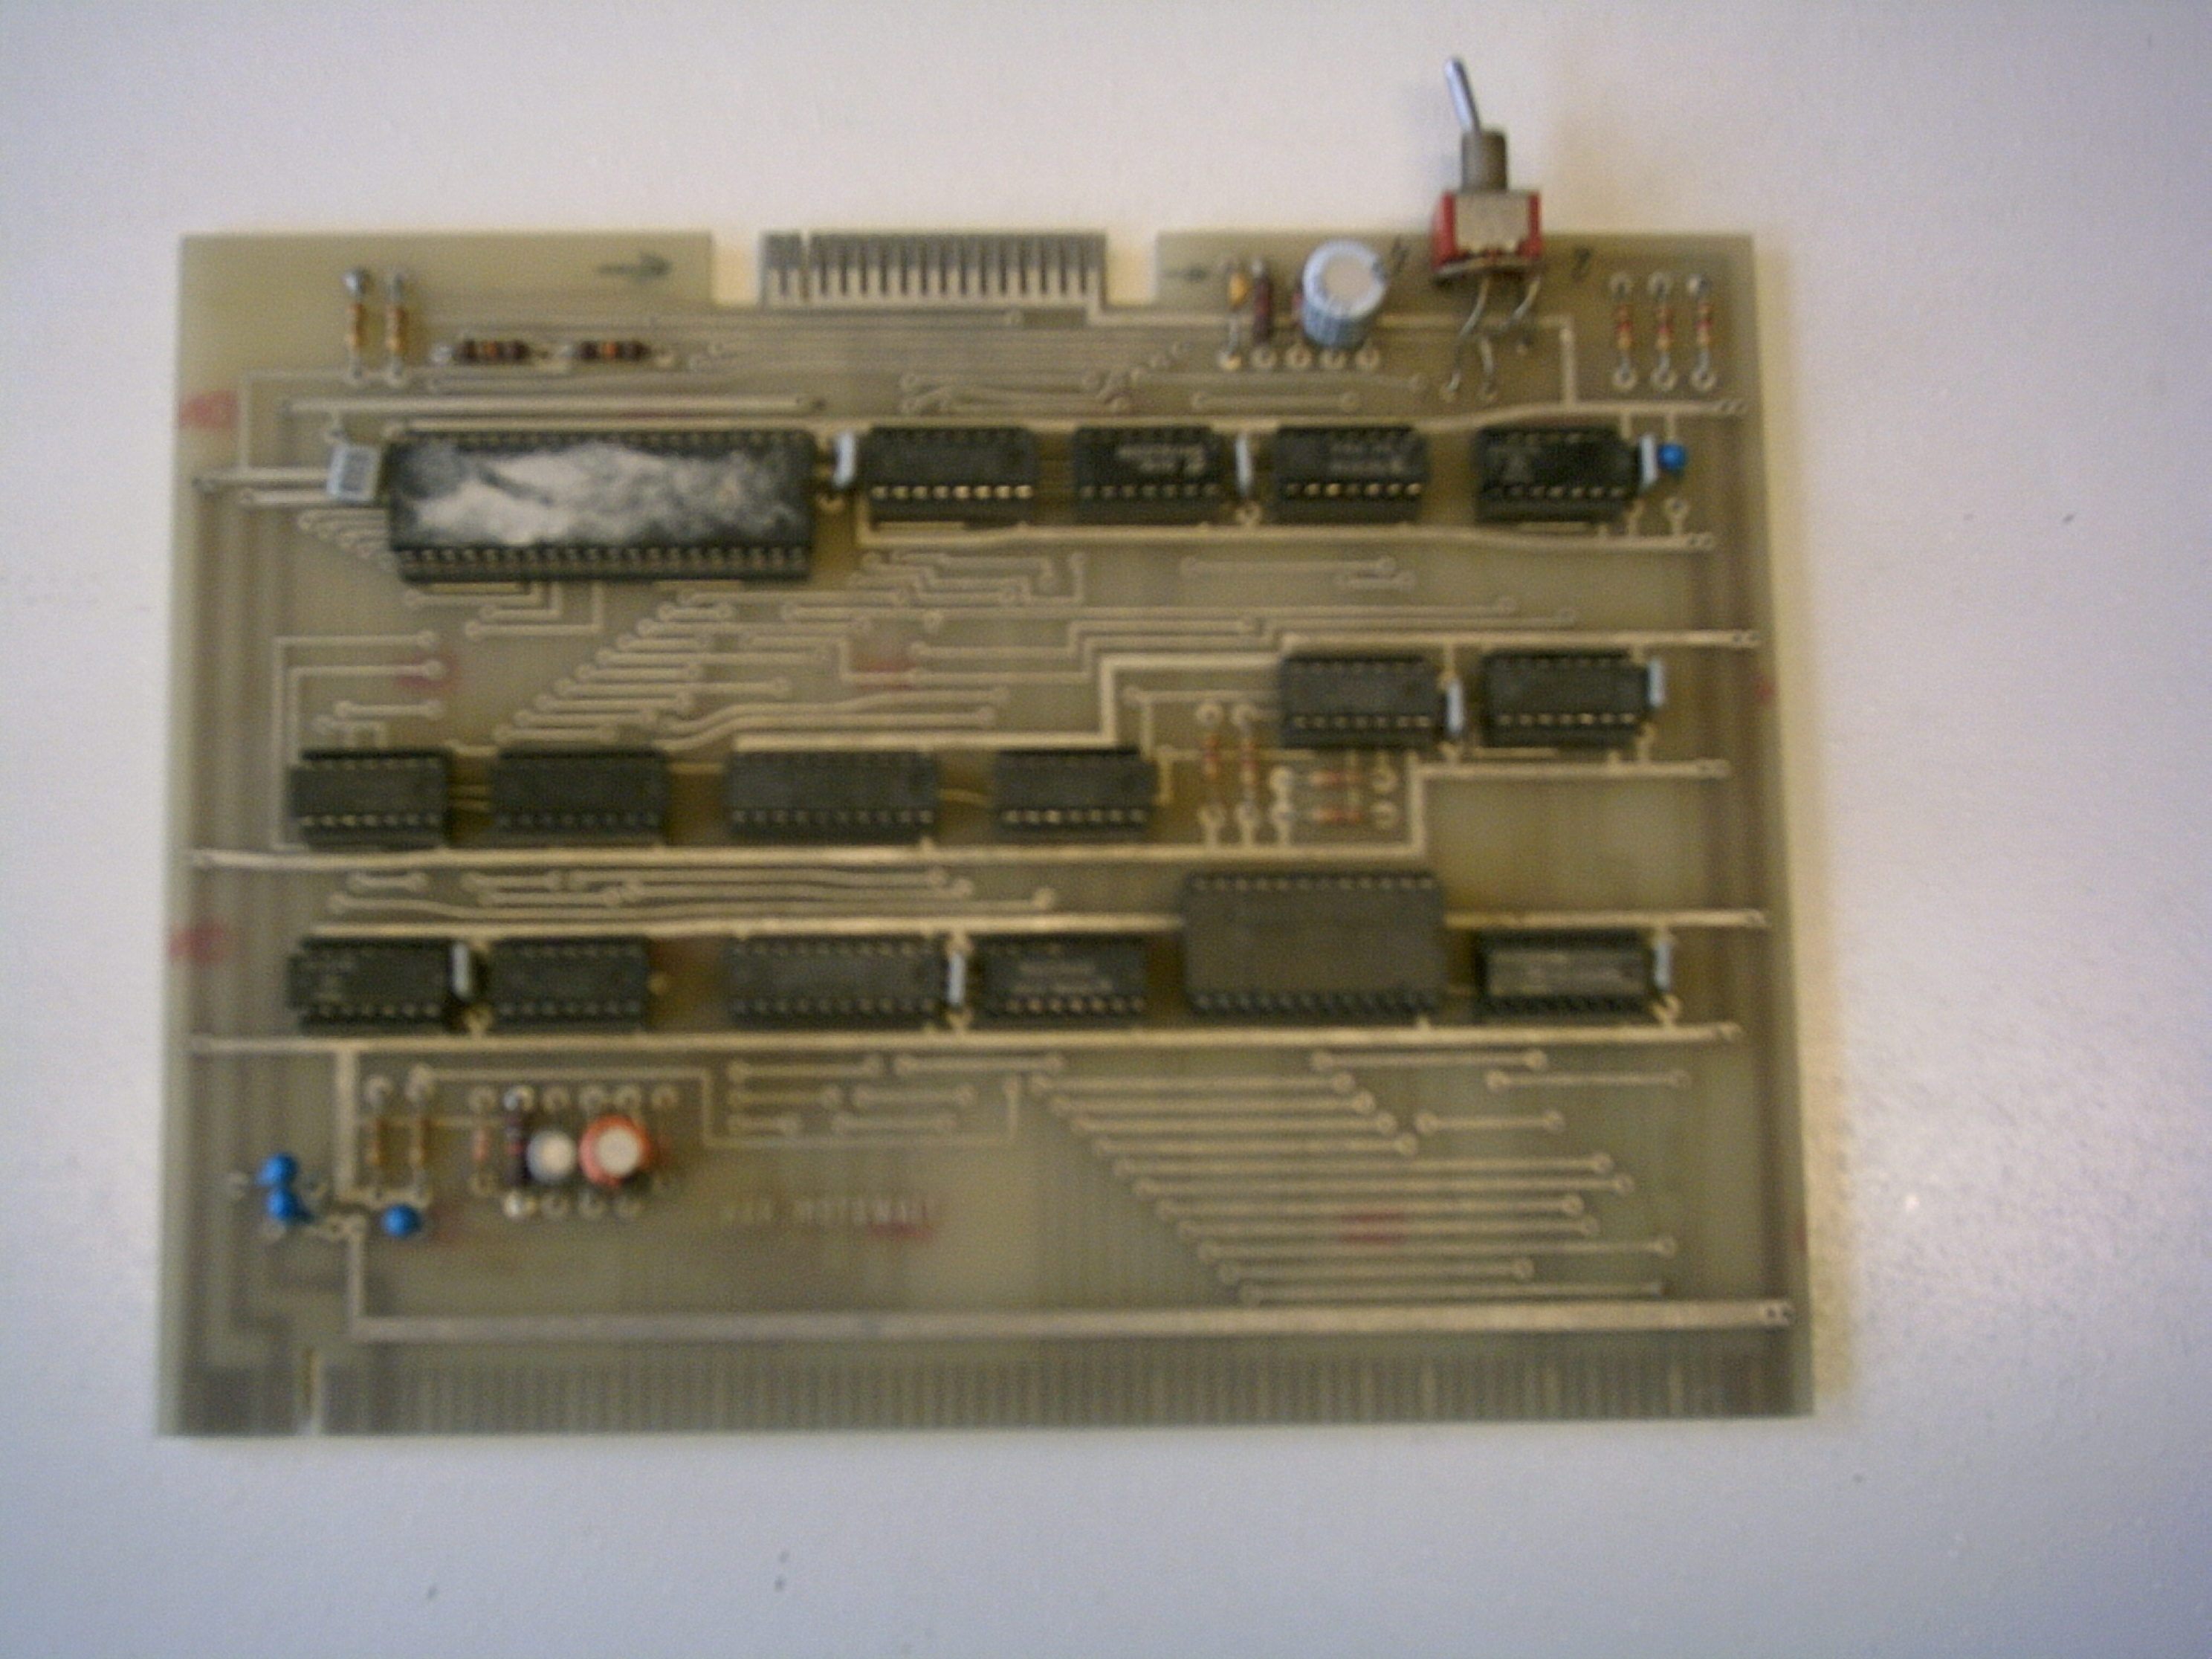 The Nascom Home Page Puter Motherboard Circuit Diagram Together With Bending Moment A Picture Of Floppydisk